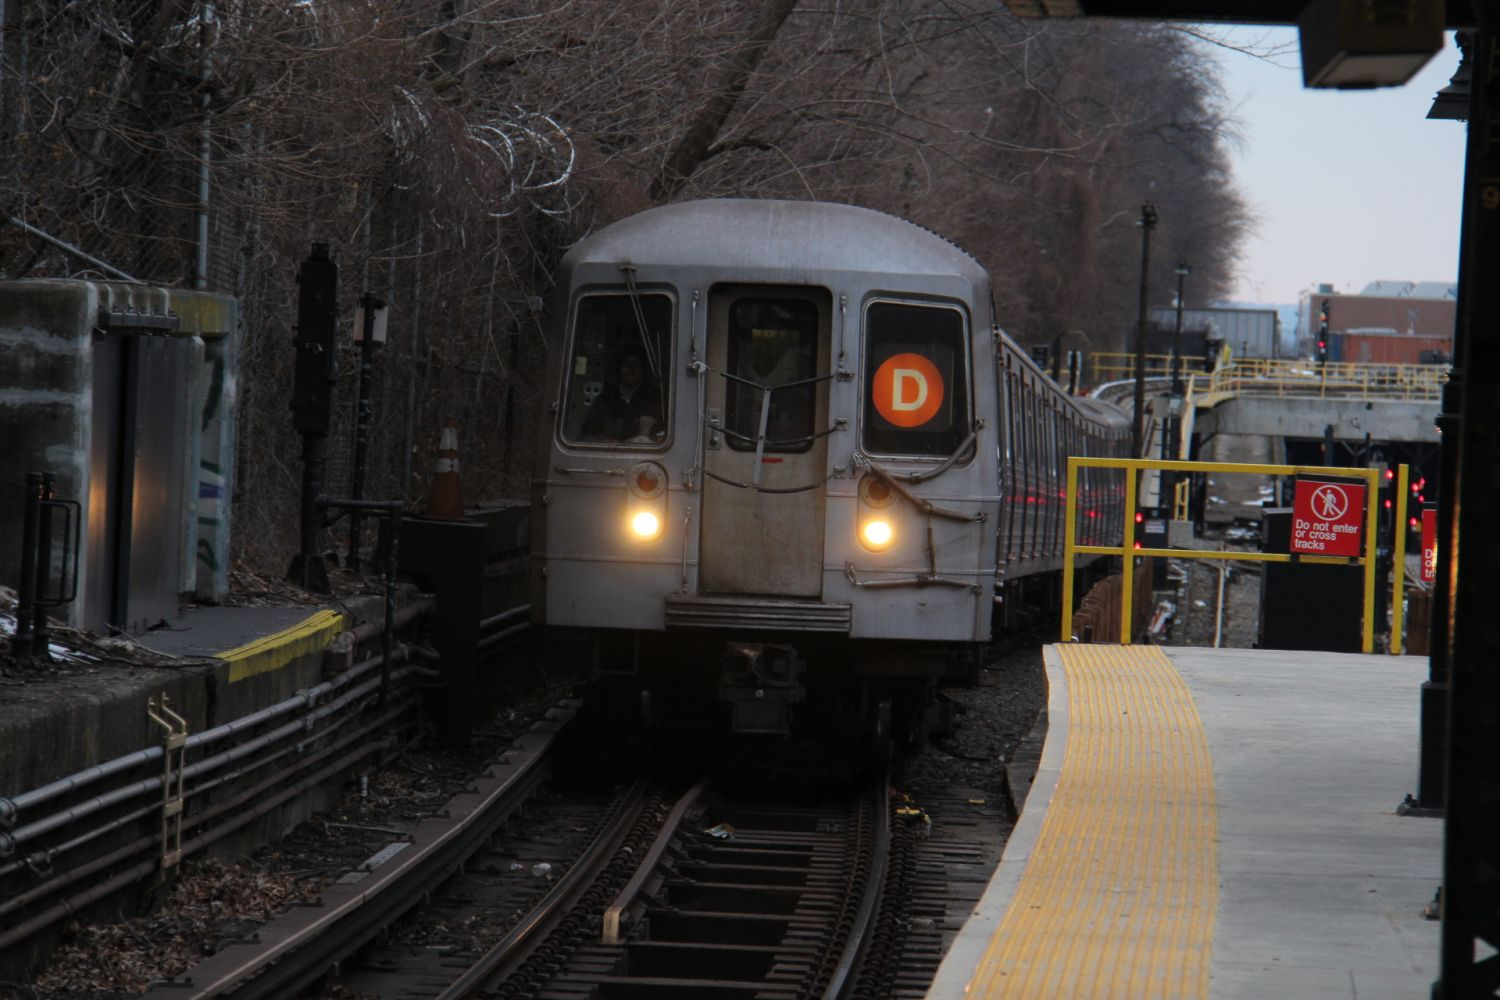 R68 (D) arriving at 9th Avenue